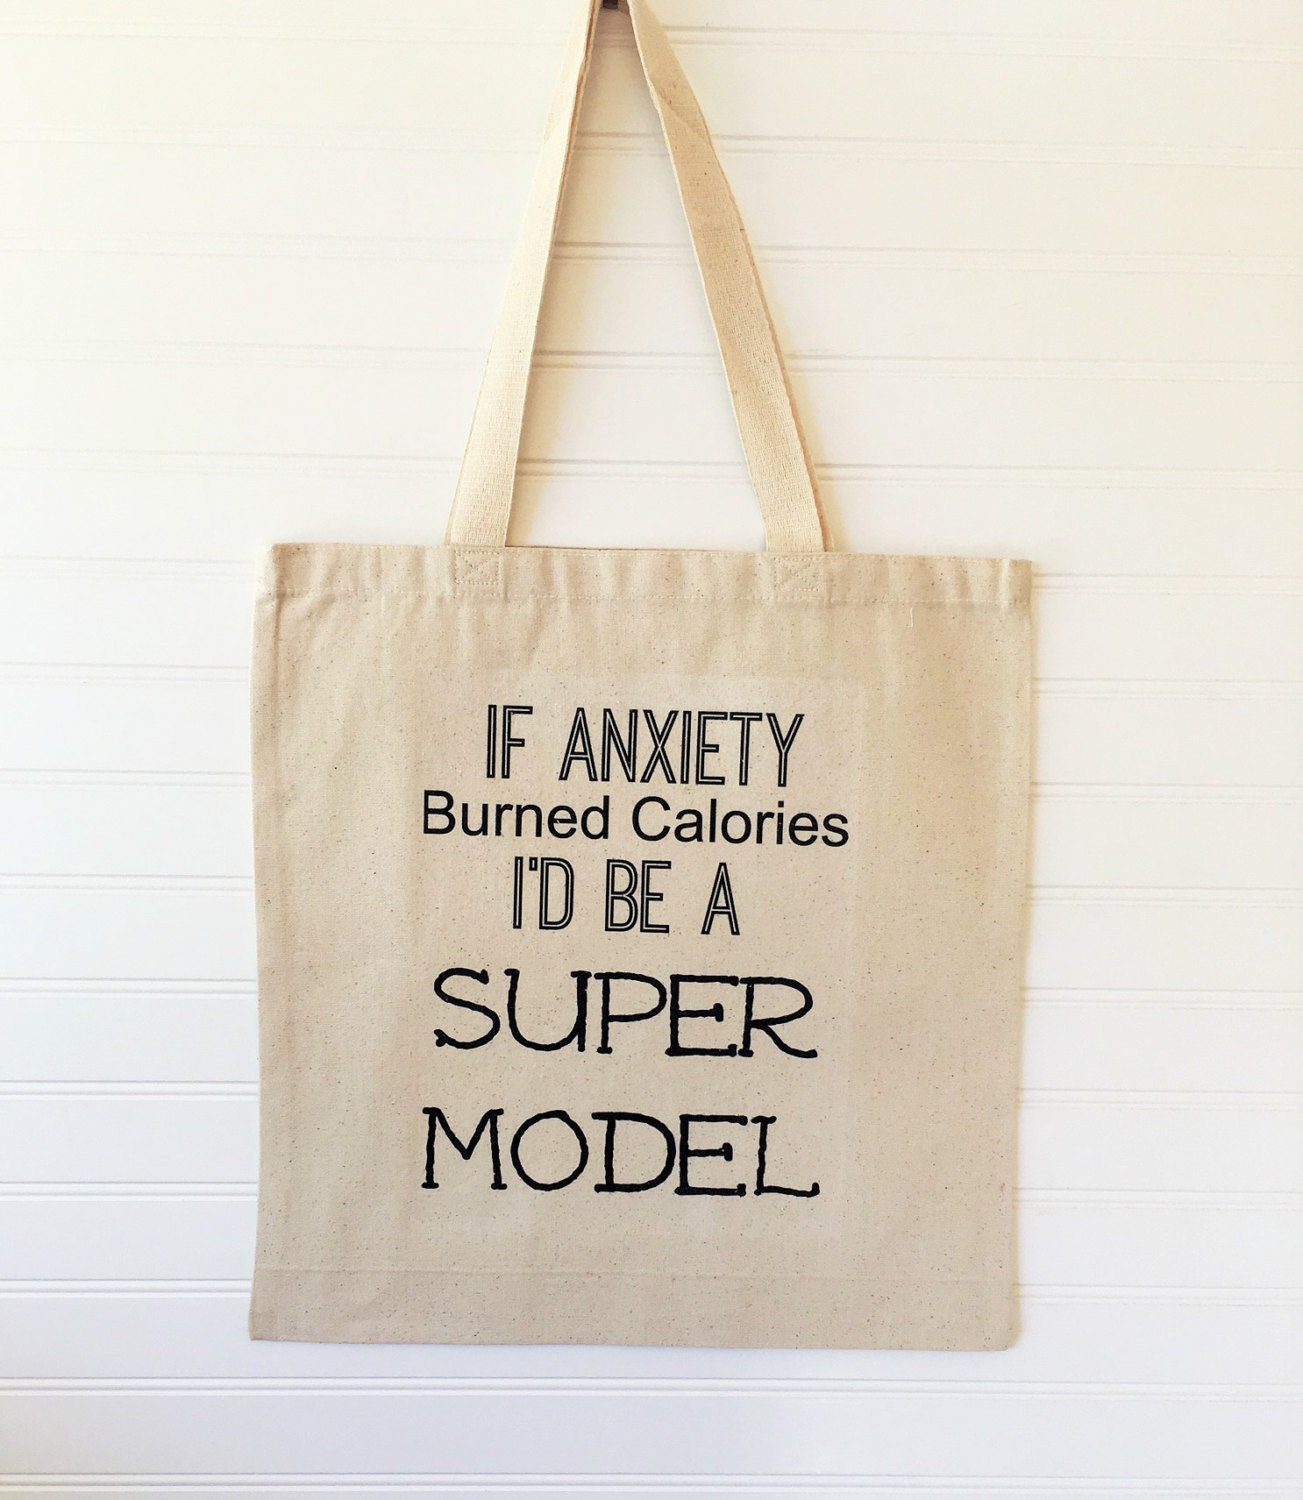 CUTE TOTE - Sassy and I Know It, If Anxiety Burned Calories, Tote ...